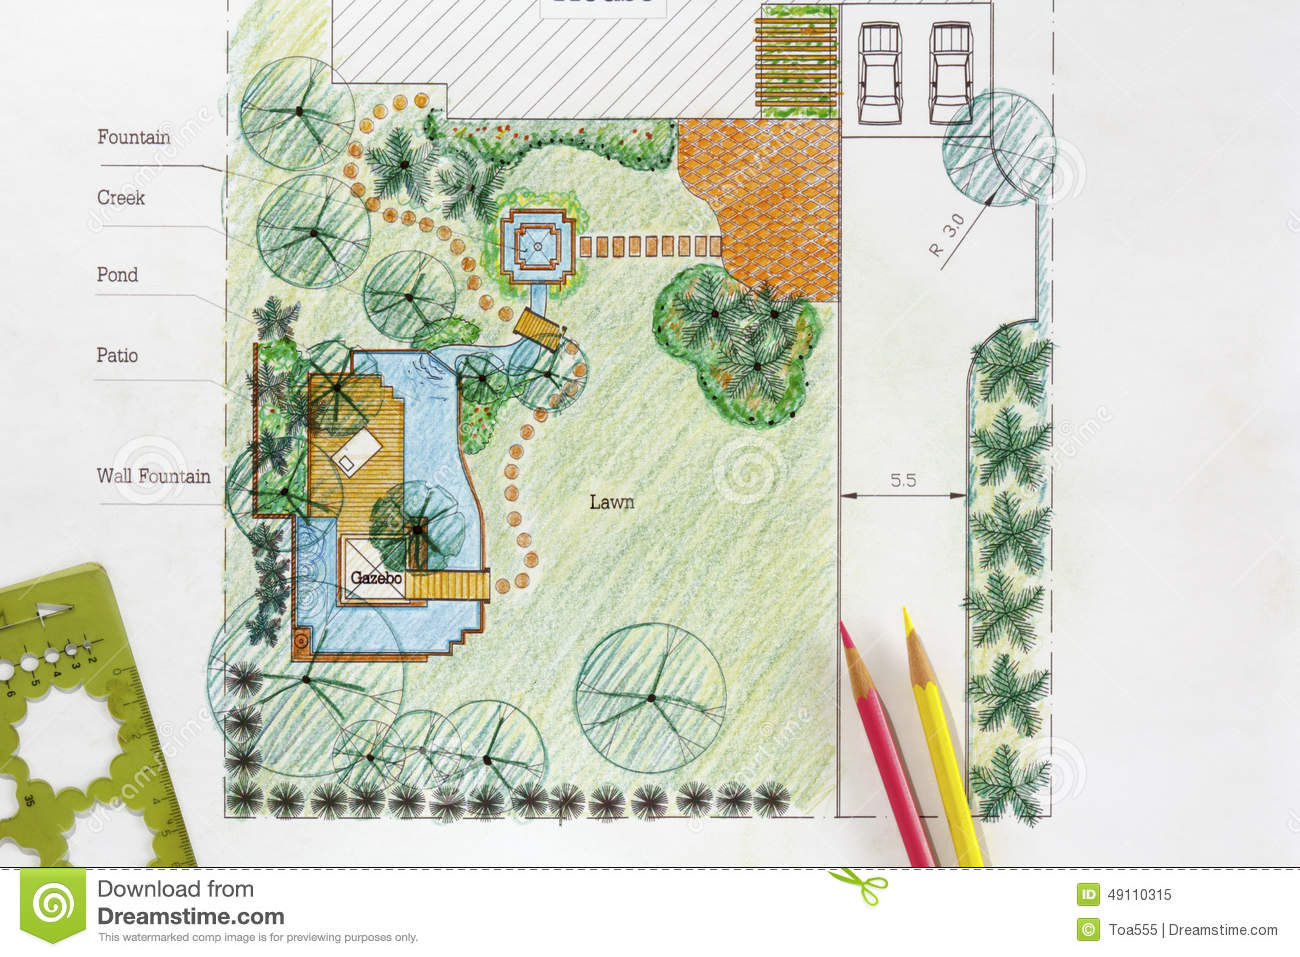 Plans de jardin de l 39 eau de conception d 39 architecte paysagiste photo - Conception bassin de jardin ...